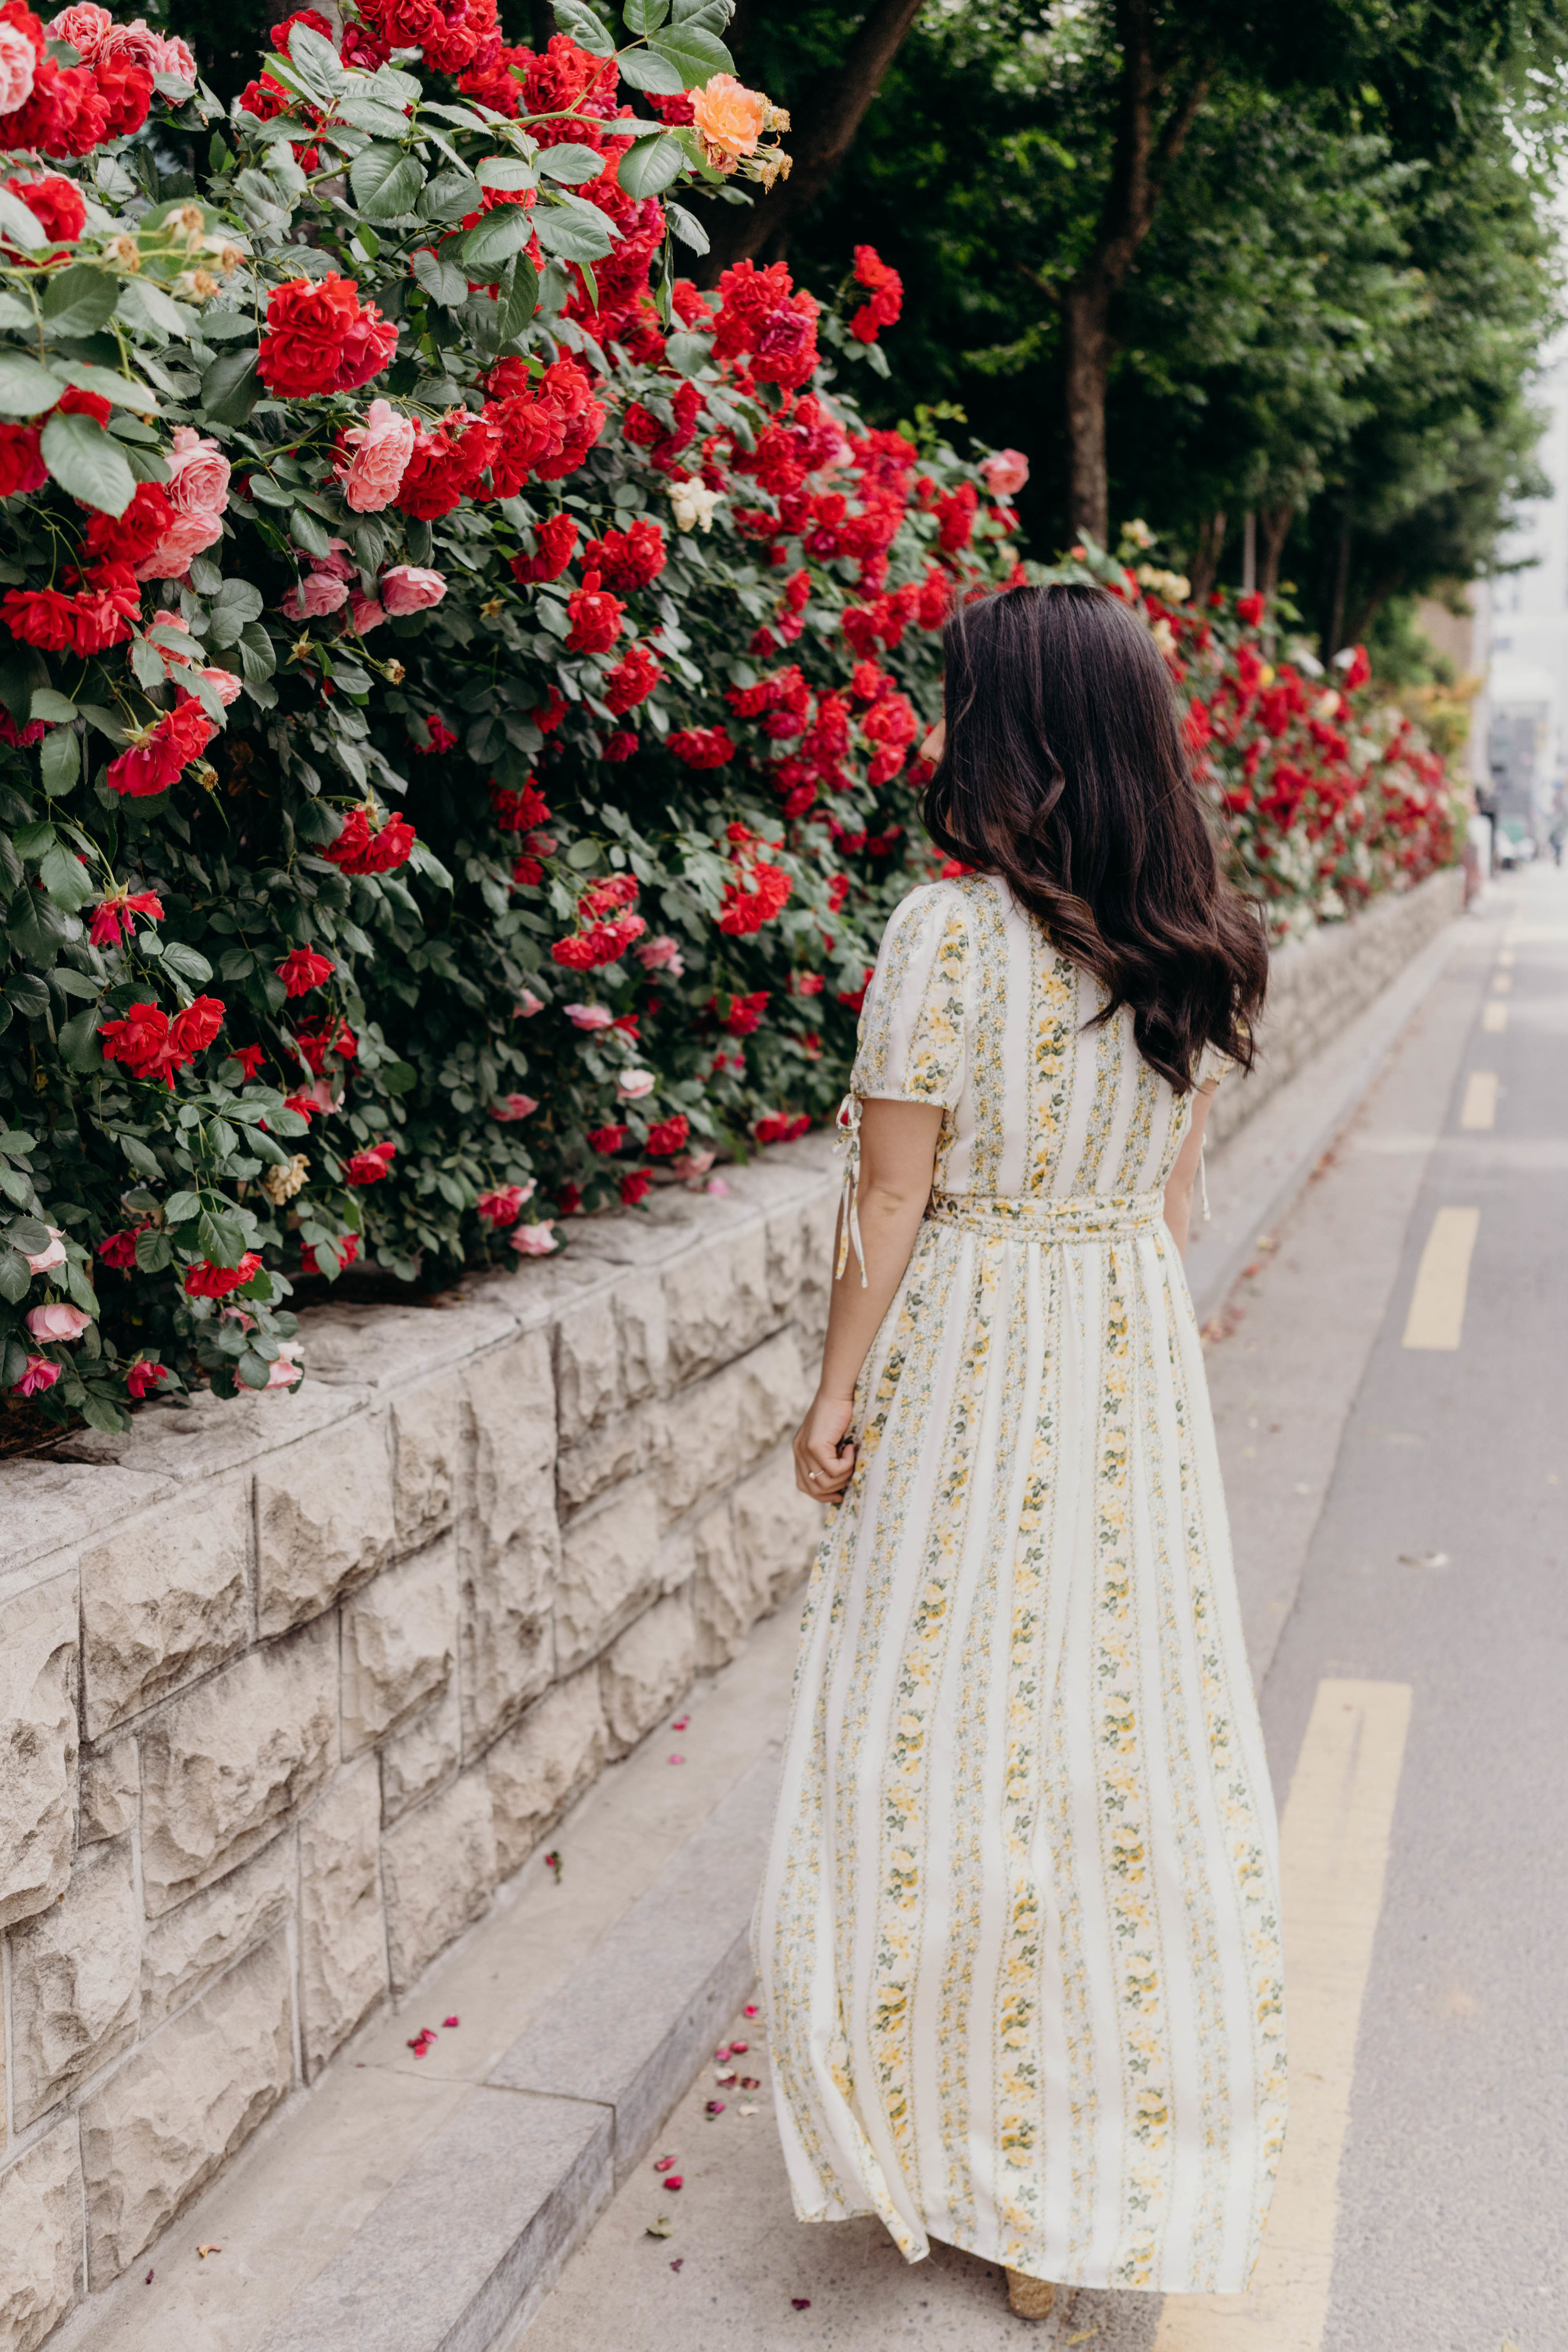 The Unexpectedly Sexy Maxi Dress | On the Street Where We Live ( aretherelilactrees.com )  summer, dresses, maxi dress, yellow, Gal Meets Glam Collection, Imogene